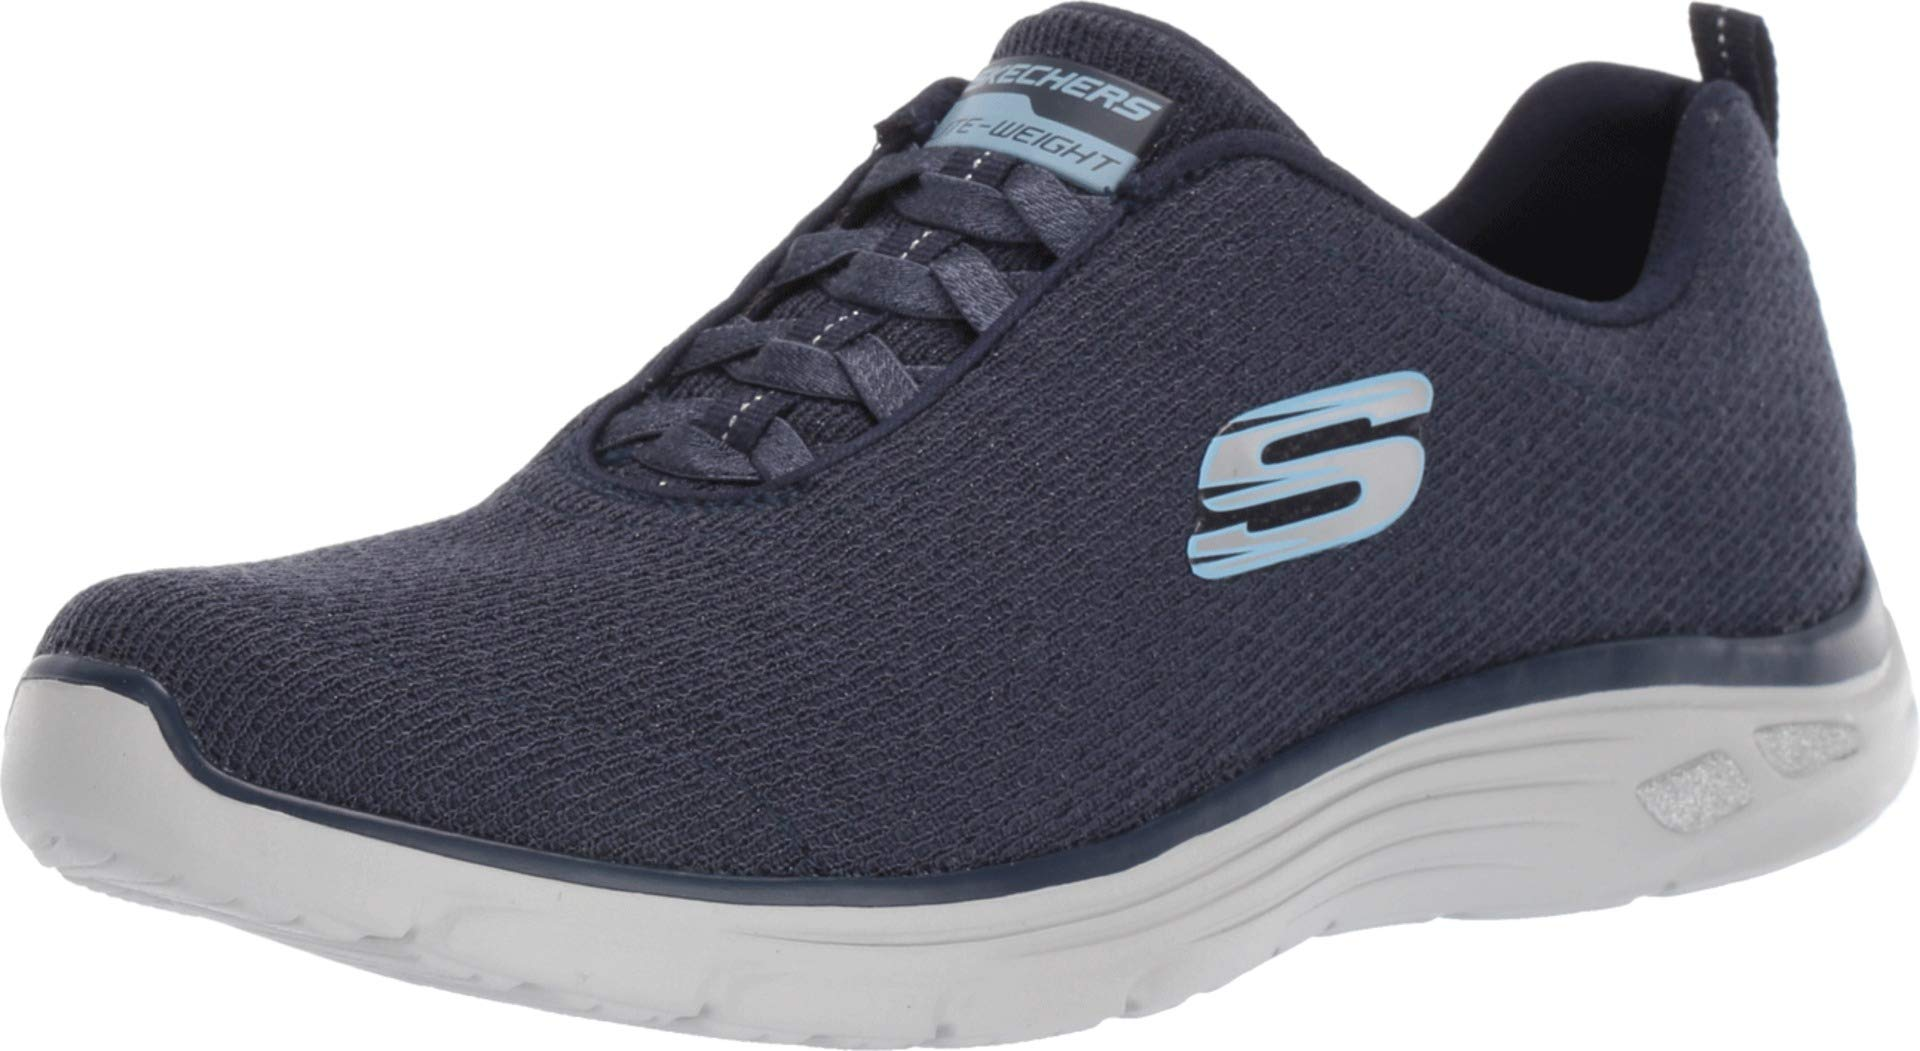 Skechers Relaxed Fit Empire Burn Bright Womens Slip On Sneakers Navy 10 by Skechers